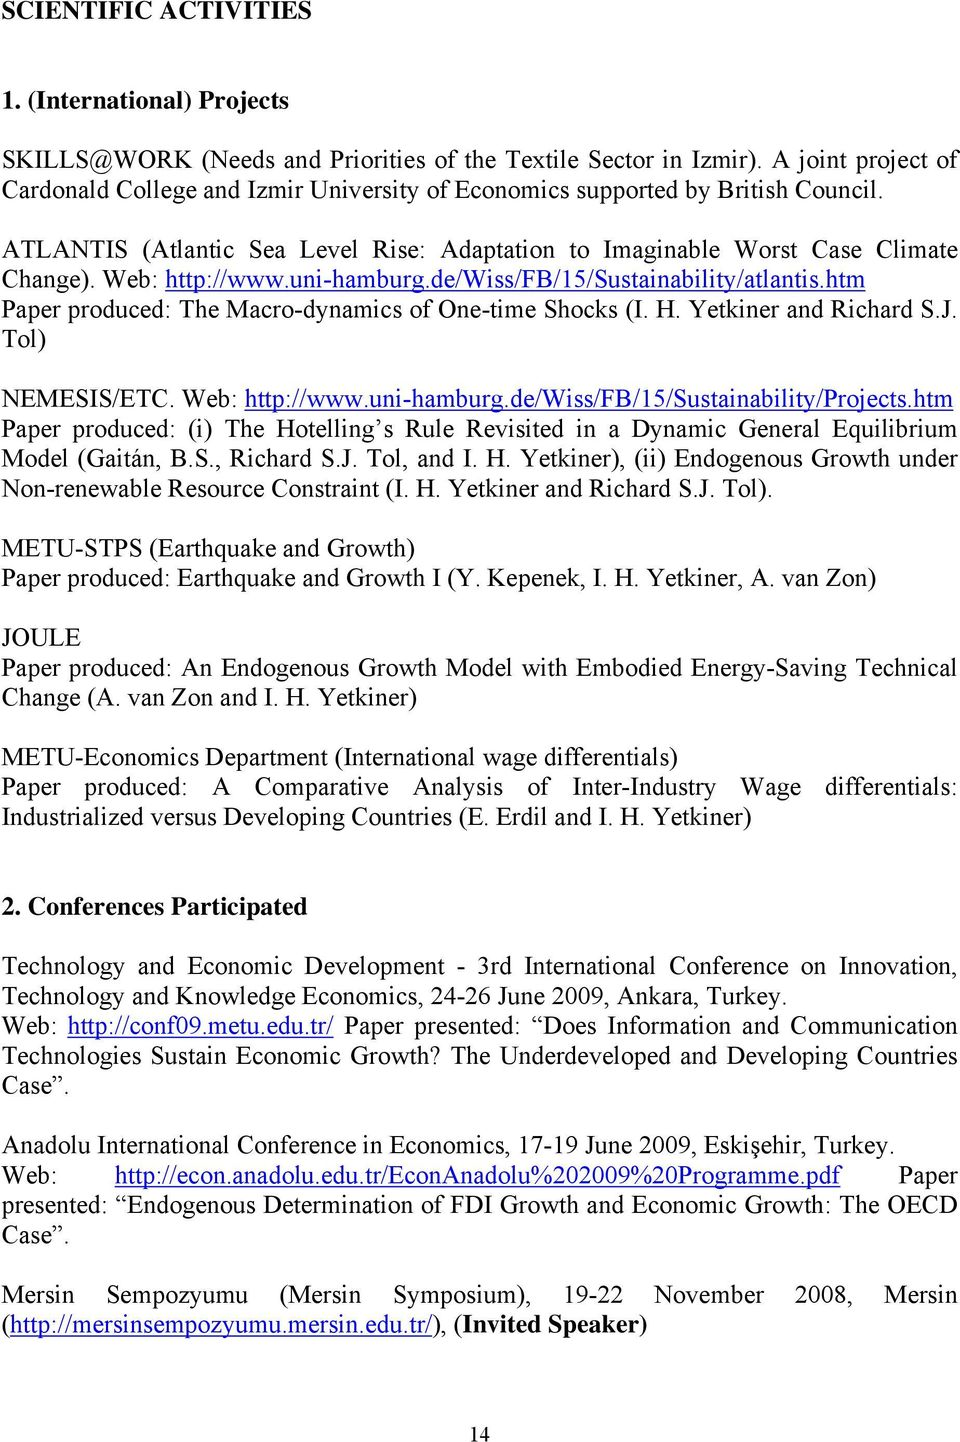 Web: http://www.uni-hamburg.de/wiss/fb/15/sustainability/atlantis.htm Paper produced: The Macro-dynamics of One-time Shocks (I. H. Yetkiner and Richard S.J. Tol) NEMESIS/ETC. Web: http://www.